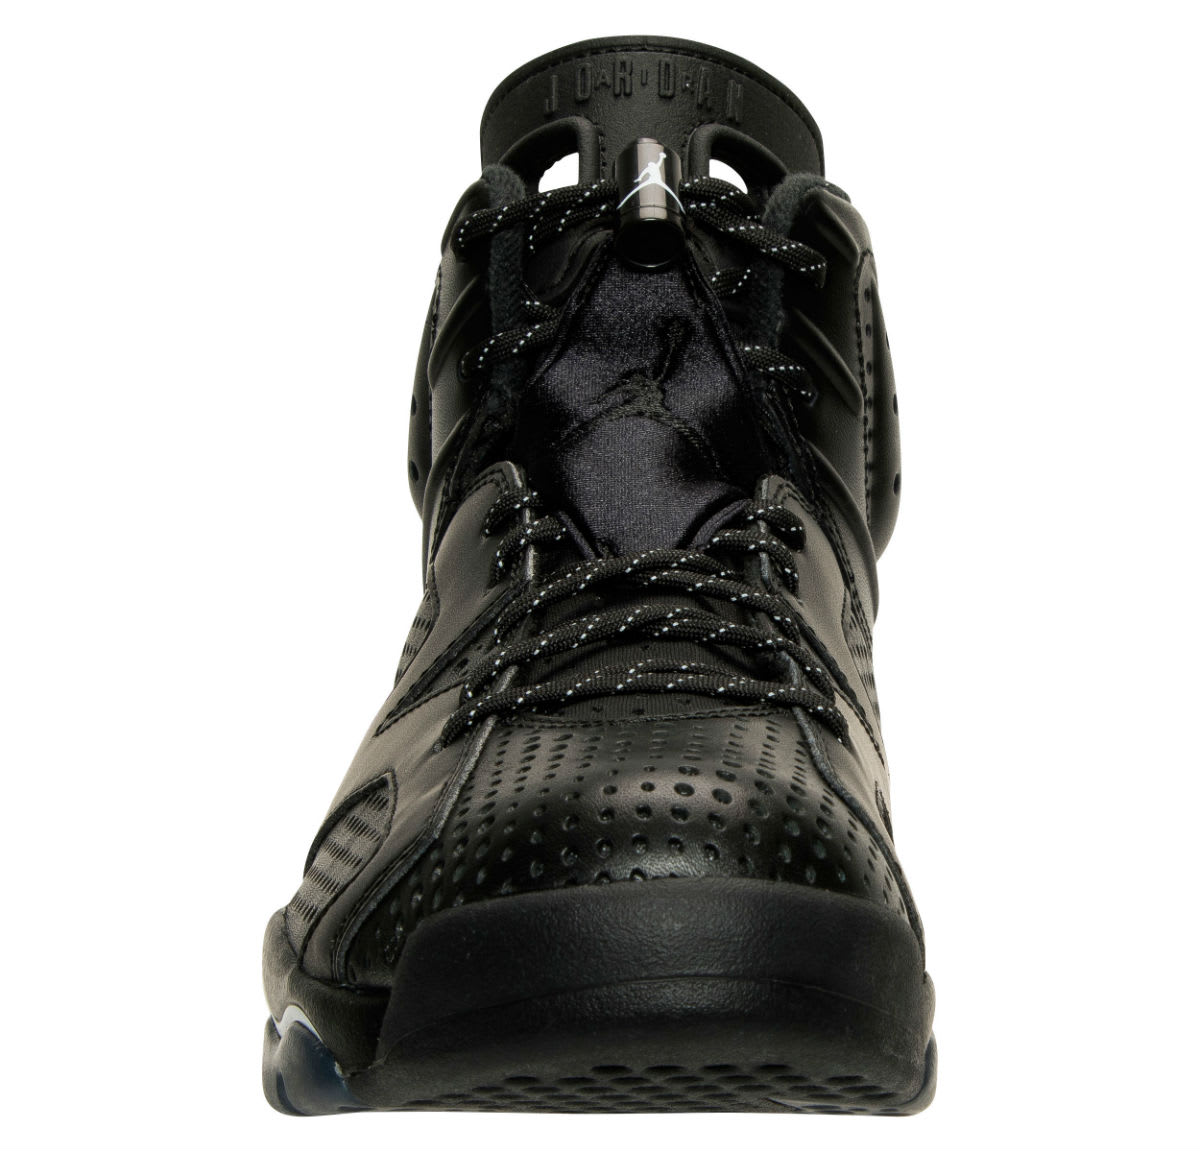 Air Jordan 6 Black Cat Release Date Front 384664-020